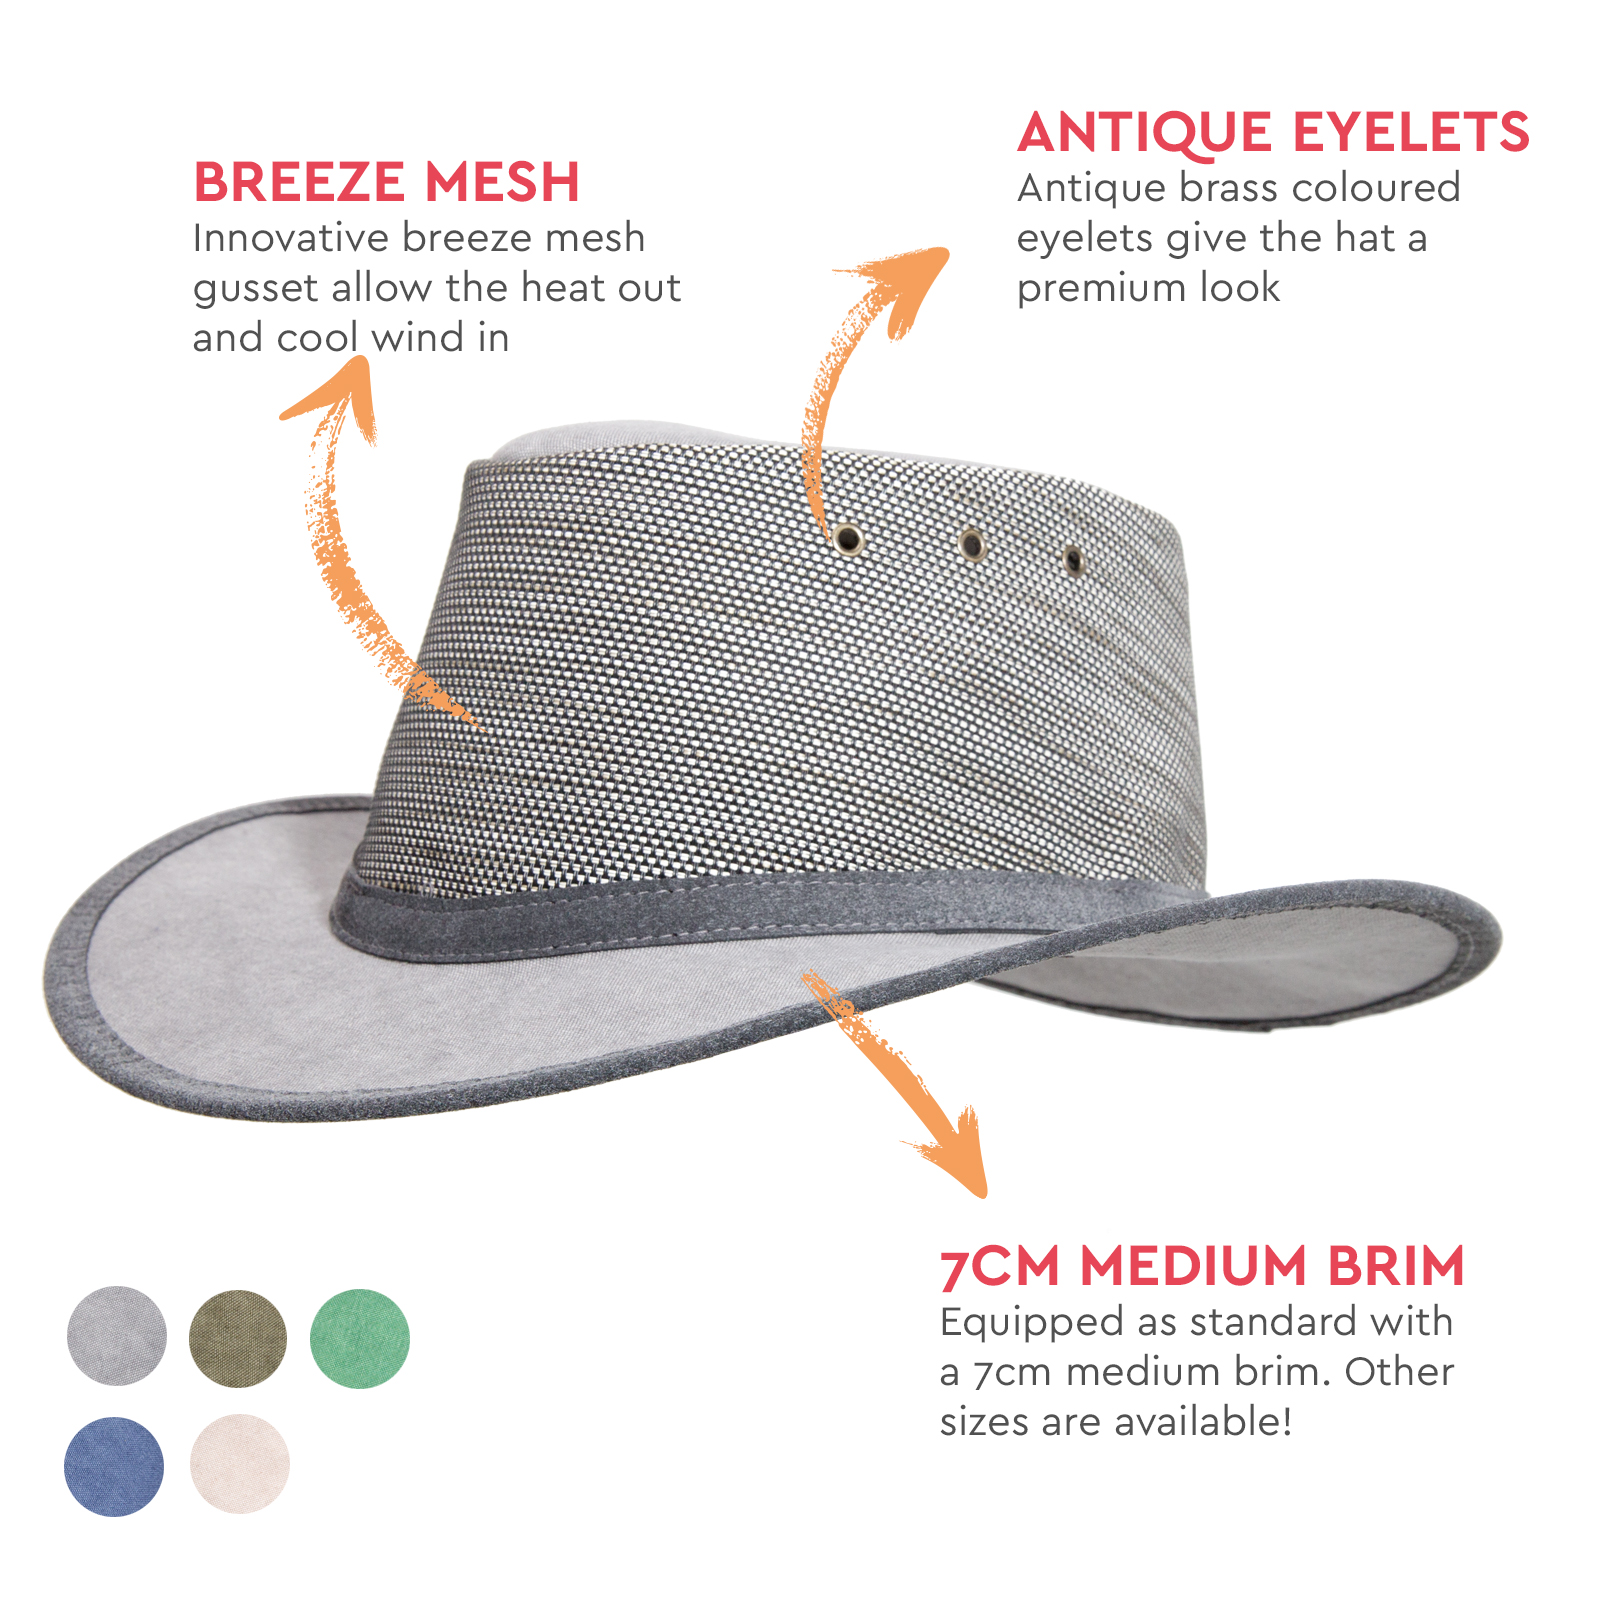 Standard Canvas Wide Brim Newcastle Hats Canning Hat